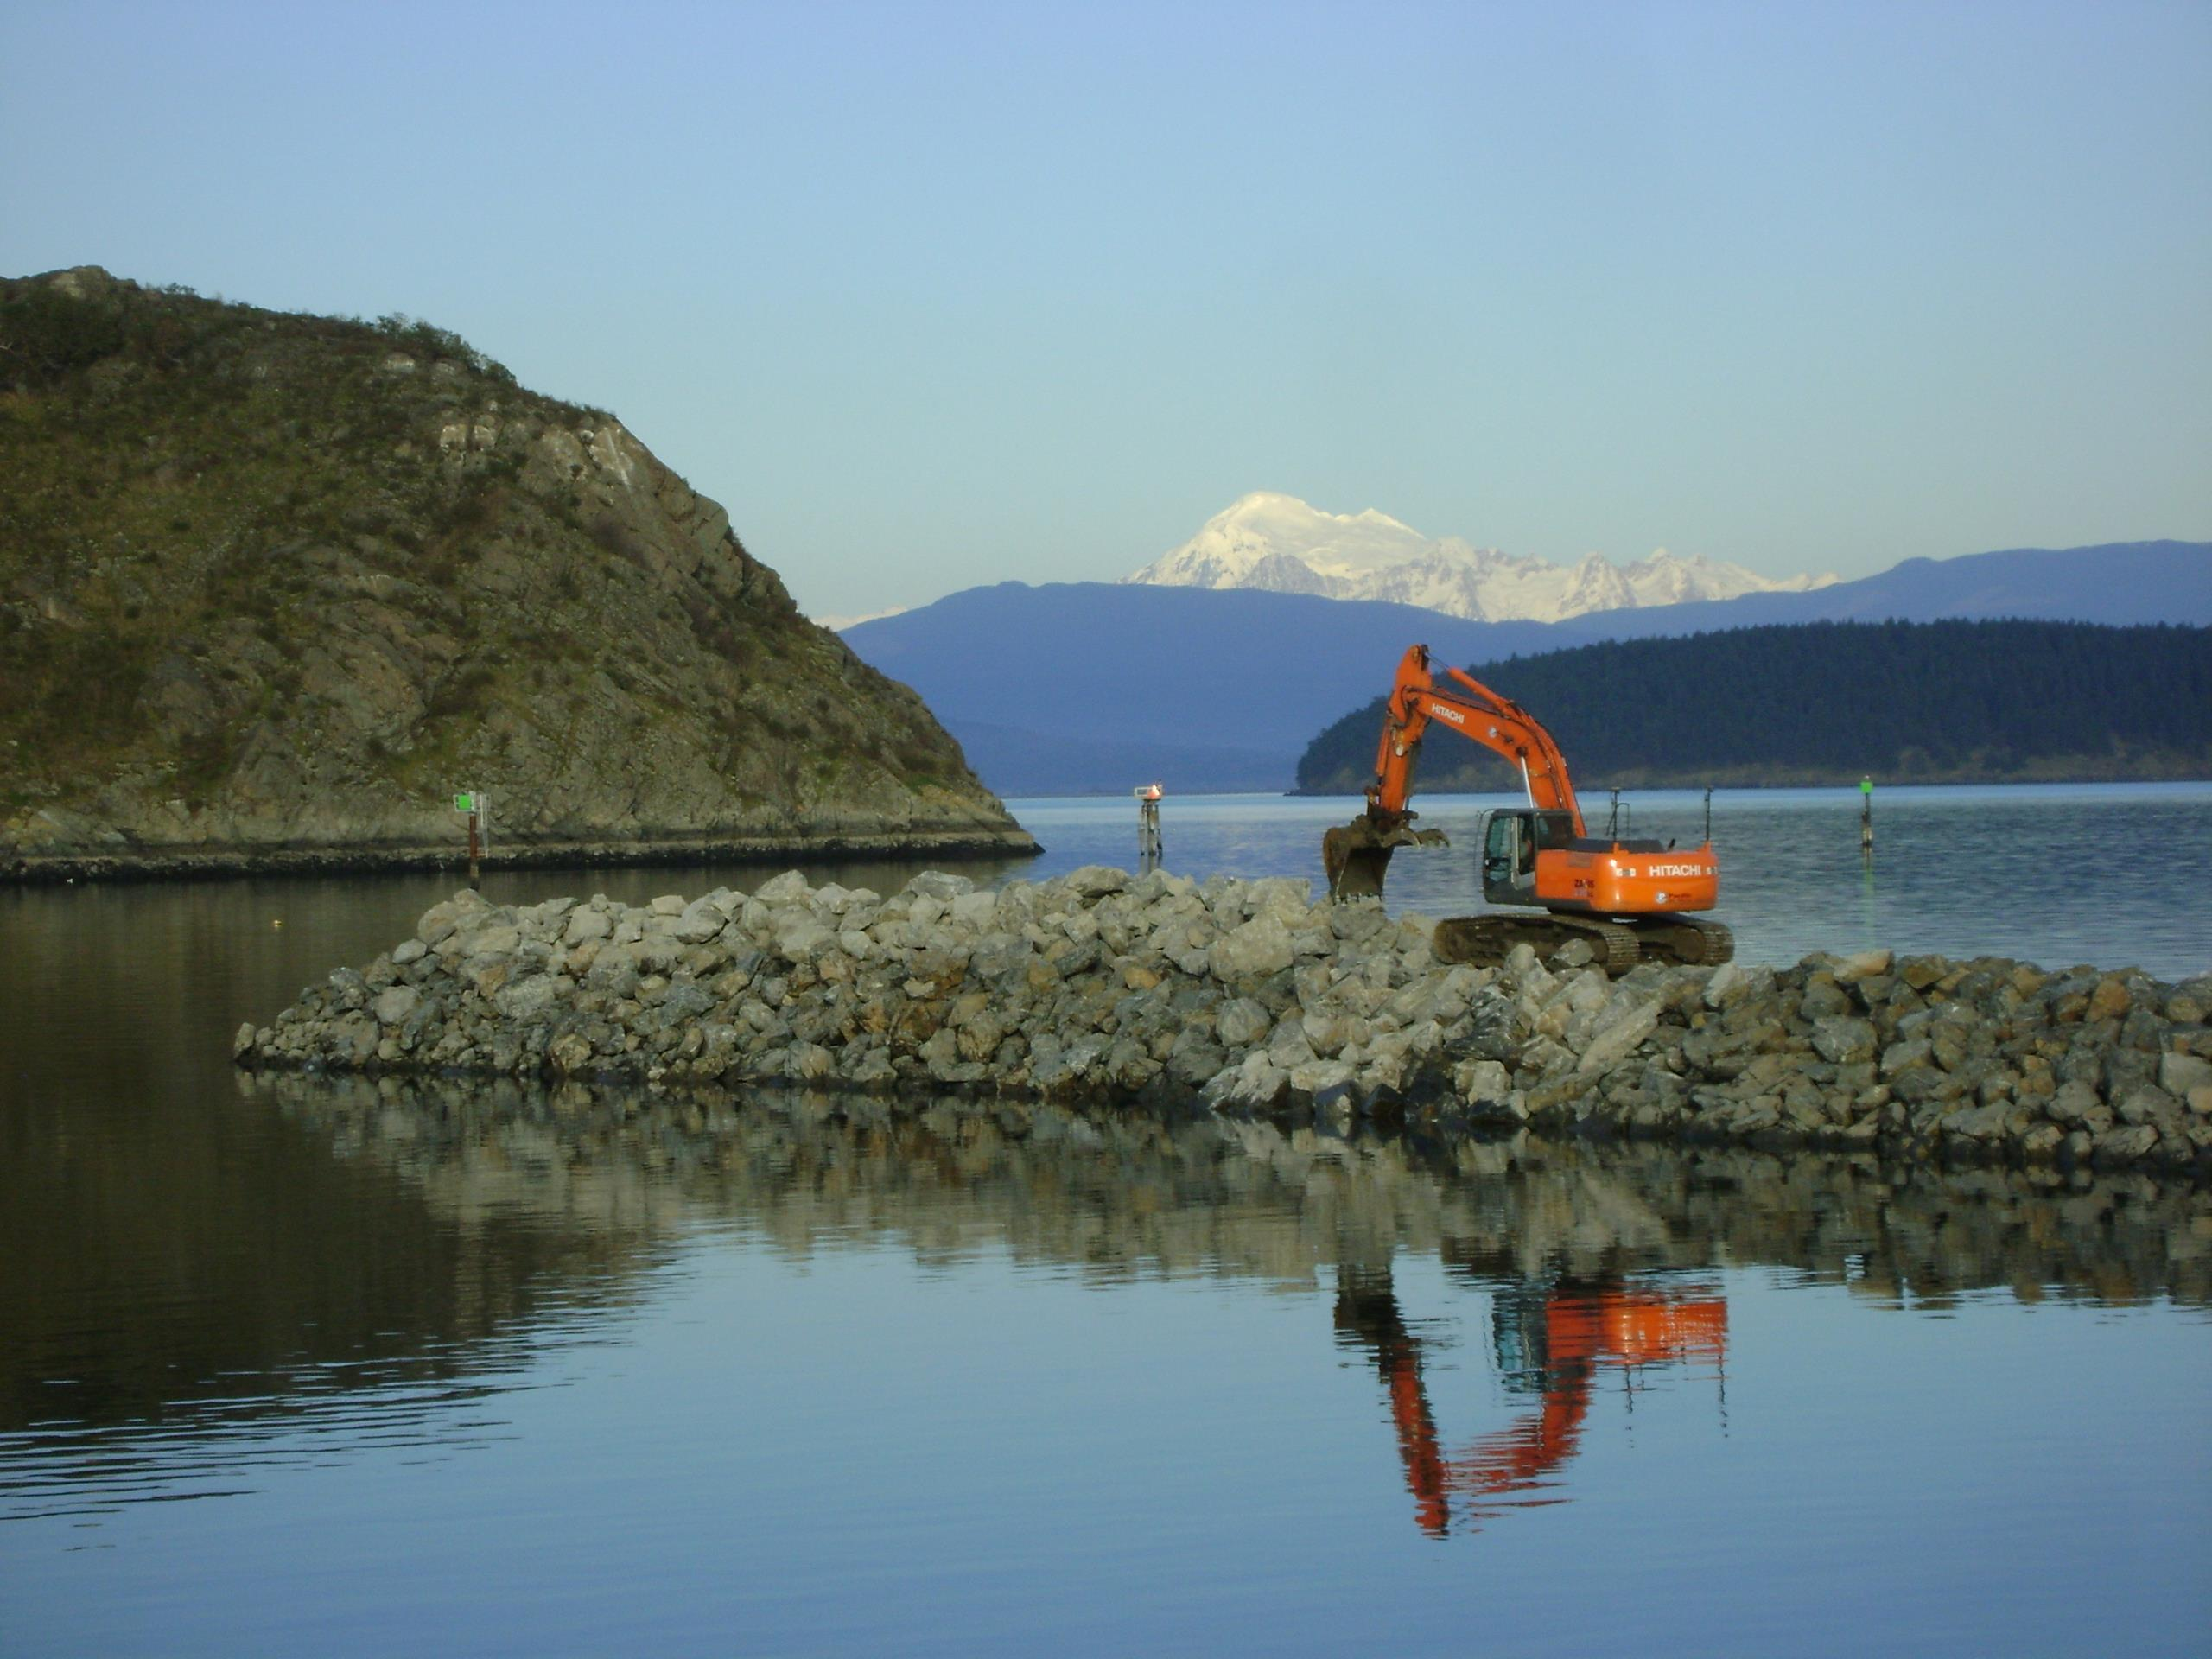 Backhoe working on a jetty